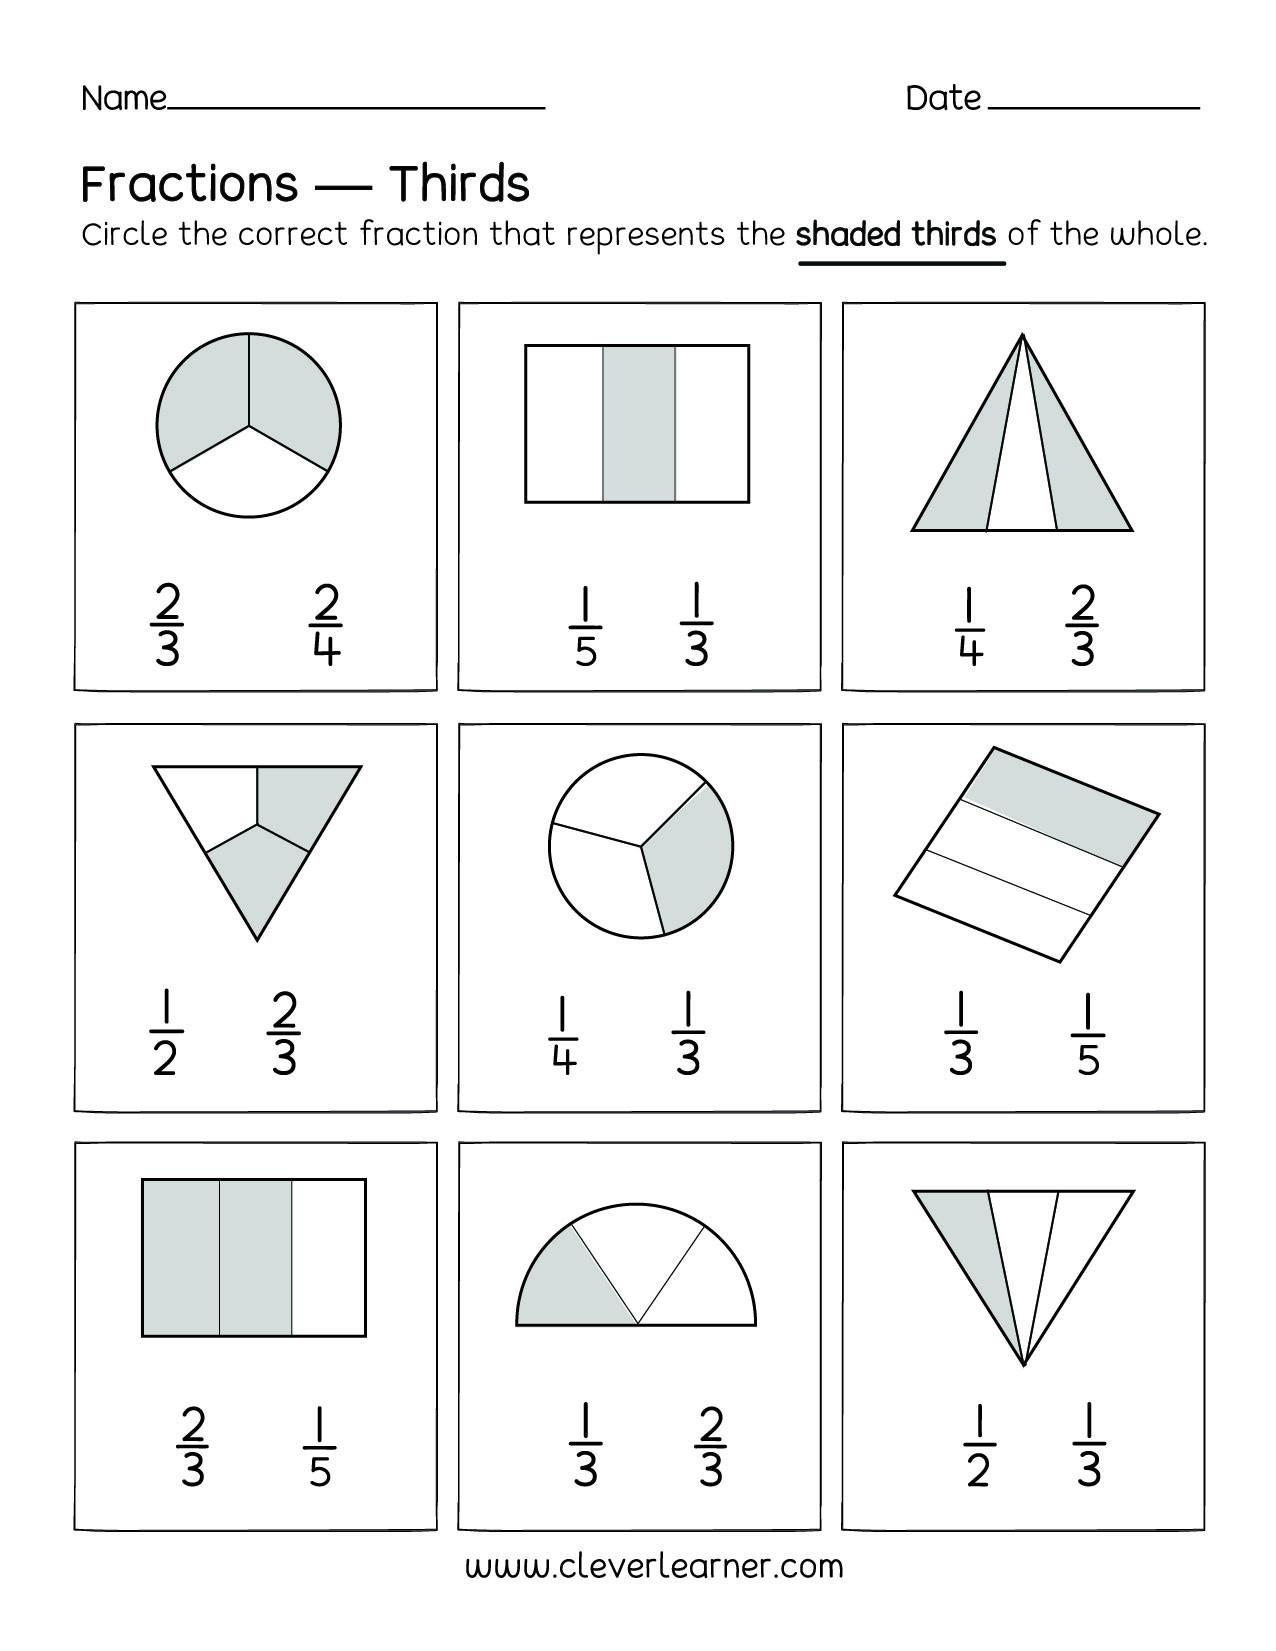 Fractions Worksheets First Grade Monthly Archives May 2020 Page 3 Indirect Object Worksheets